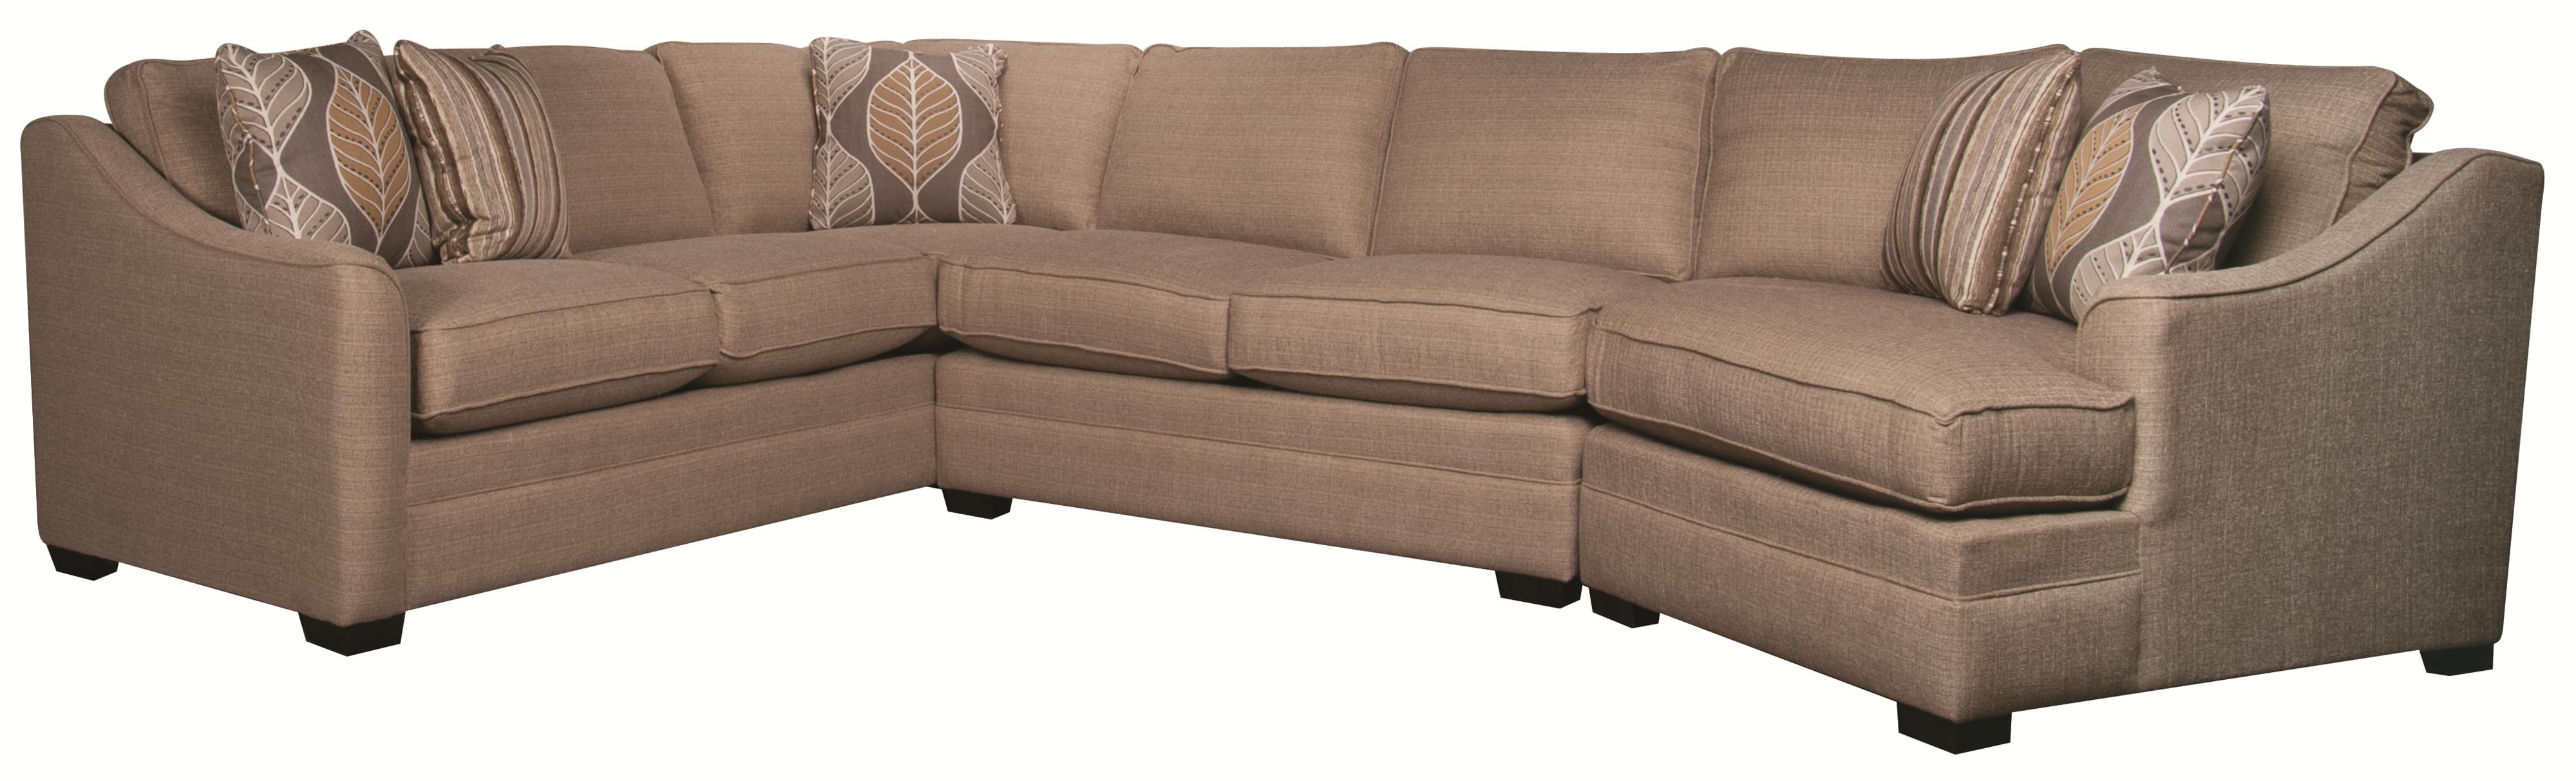 Main & Madison Bjorn 3 Piece Sectional Morris Home Sofa Sectional